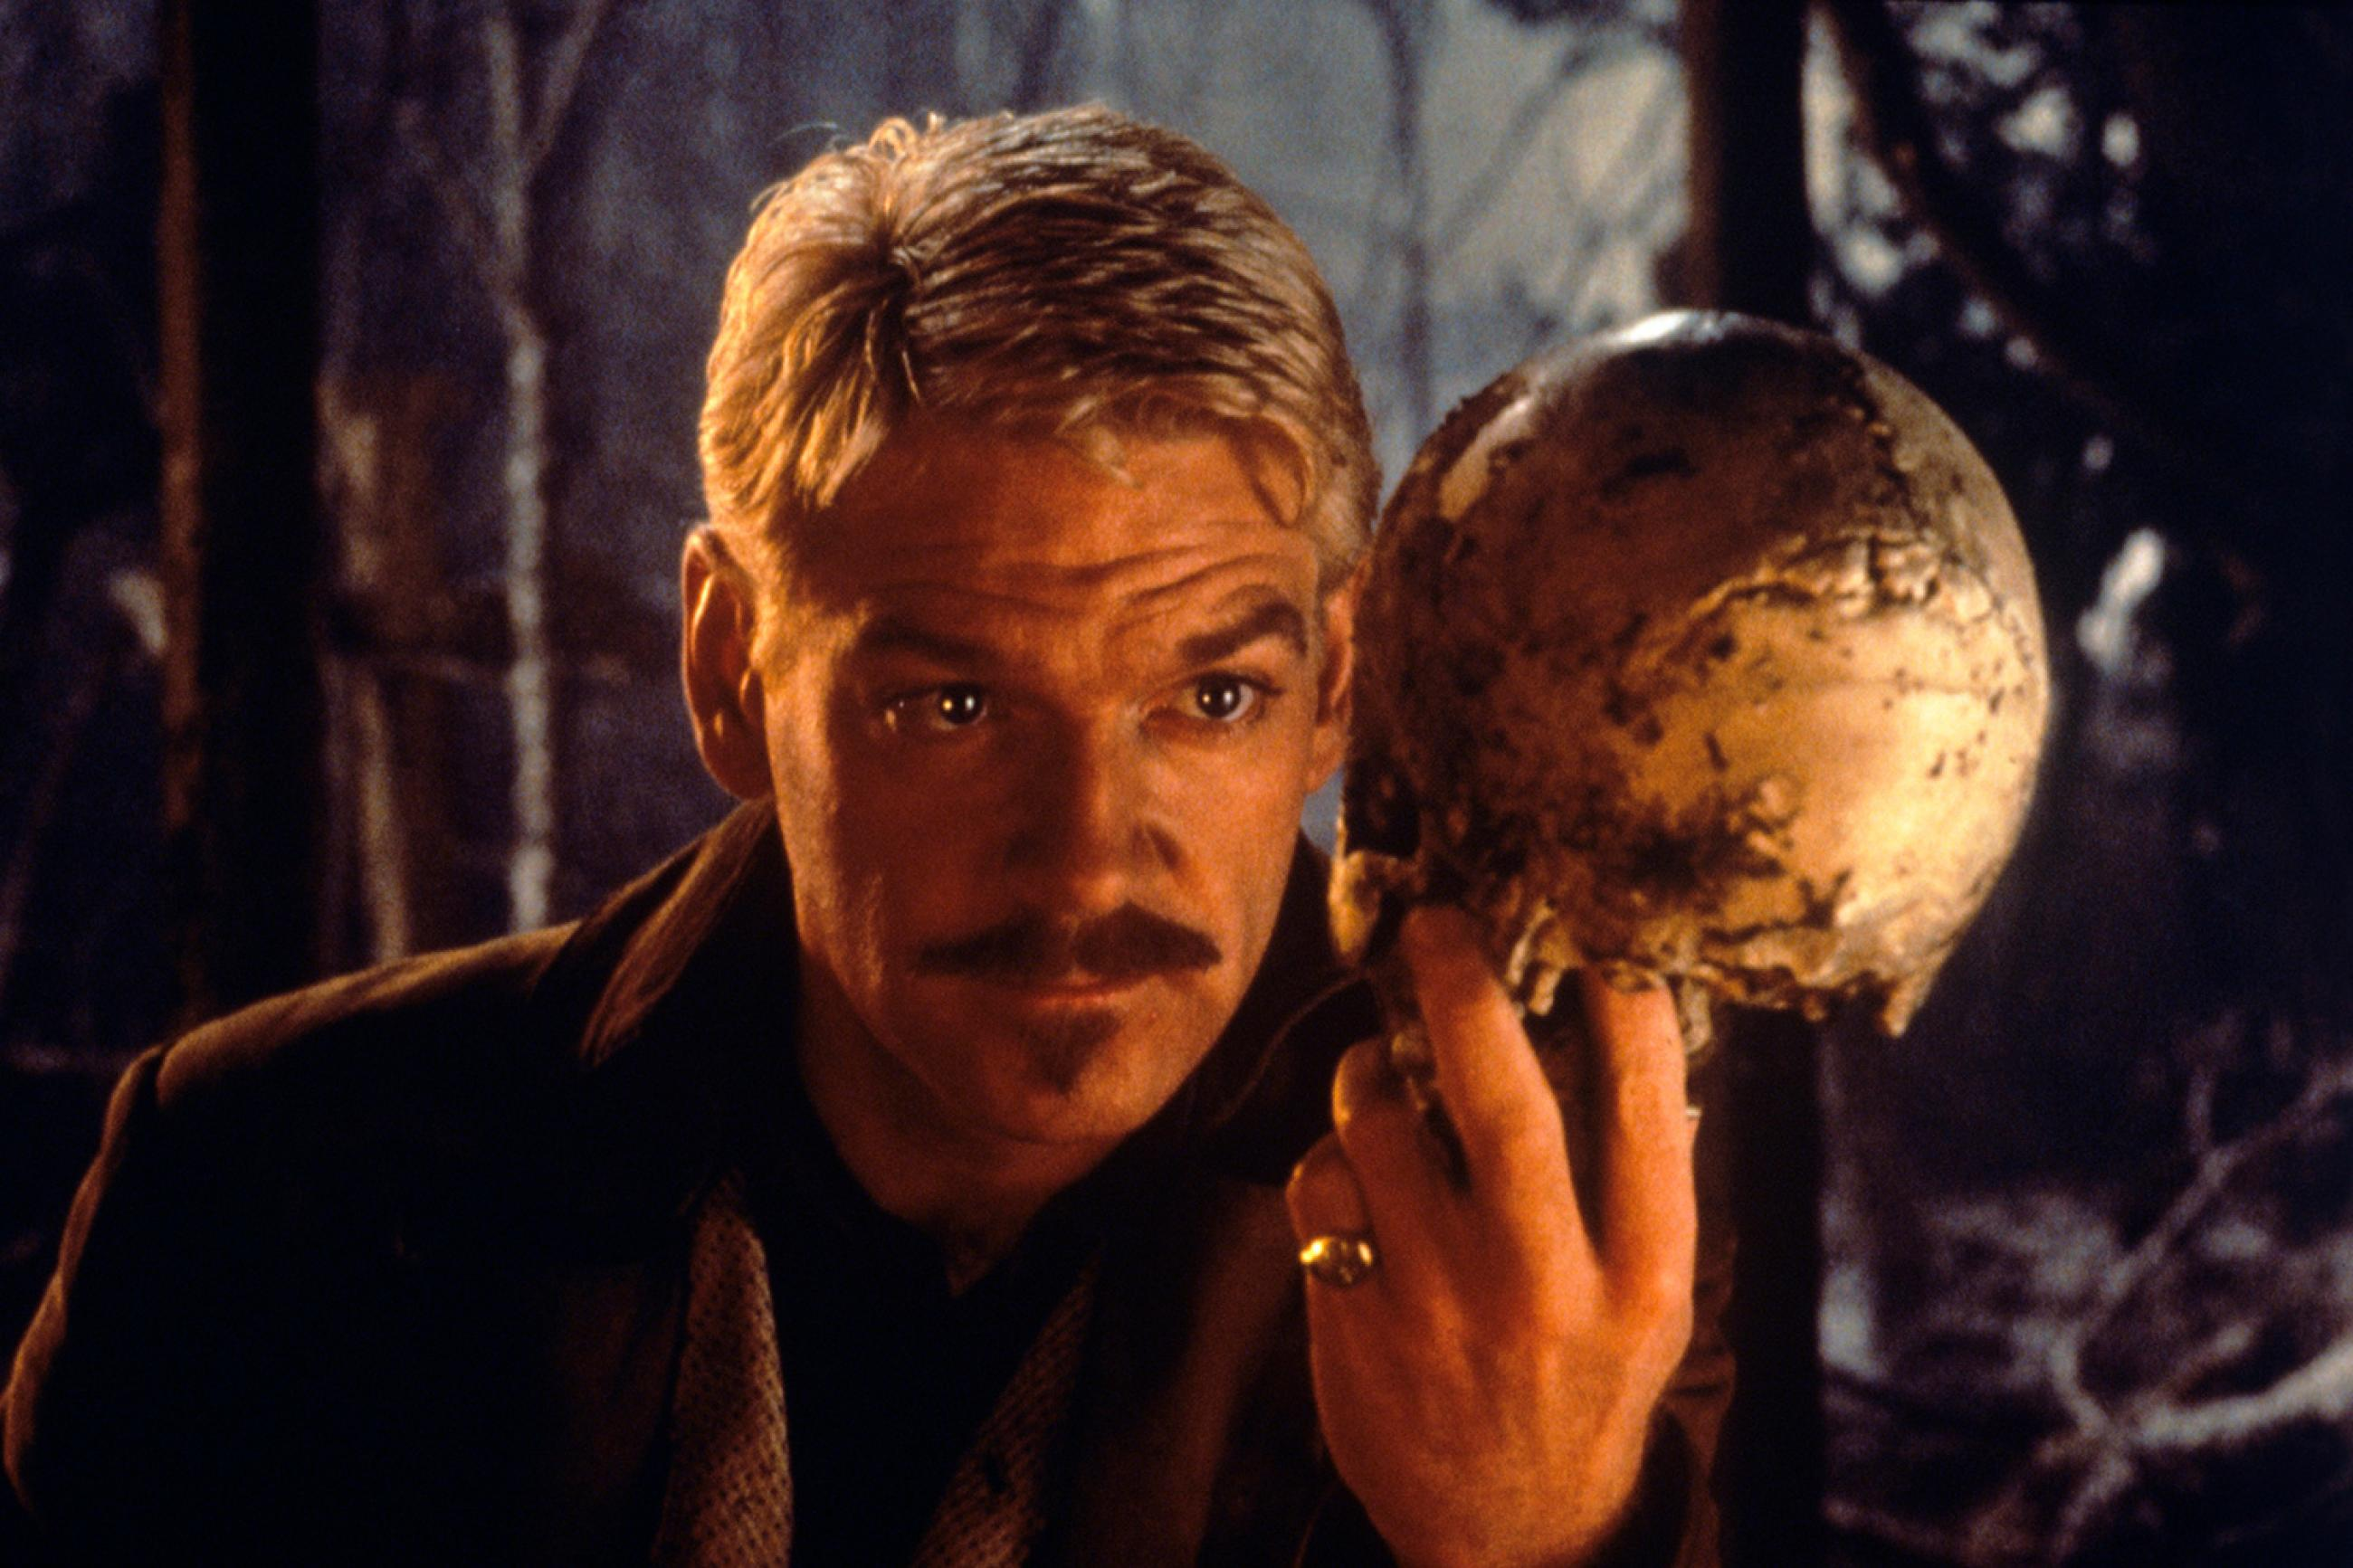 """The story title comes from Shakespeare: """" The heart-ache and the thousand natural shocks / That flesh is heir to""""—photo is of British actor Kenneth Branaugh holding a skull in the film Hamlet (1996). The photo shows the actor bathed in orange light and dressed in period garb holding a skull in a contemplative pose. GETTY IMAGES/Mondadori"""